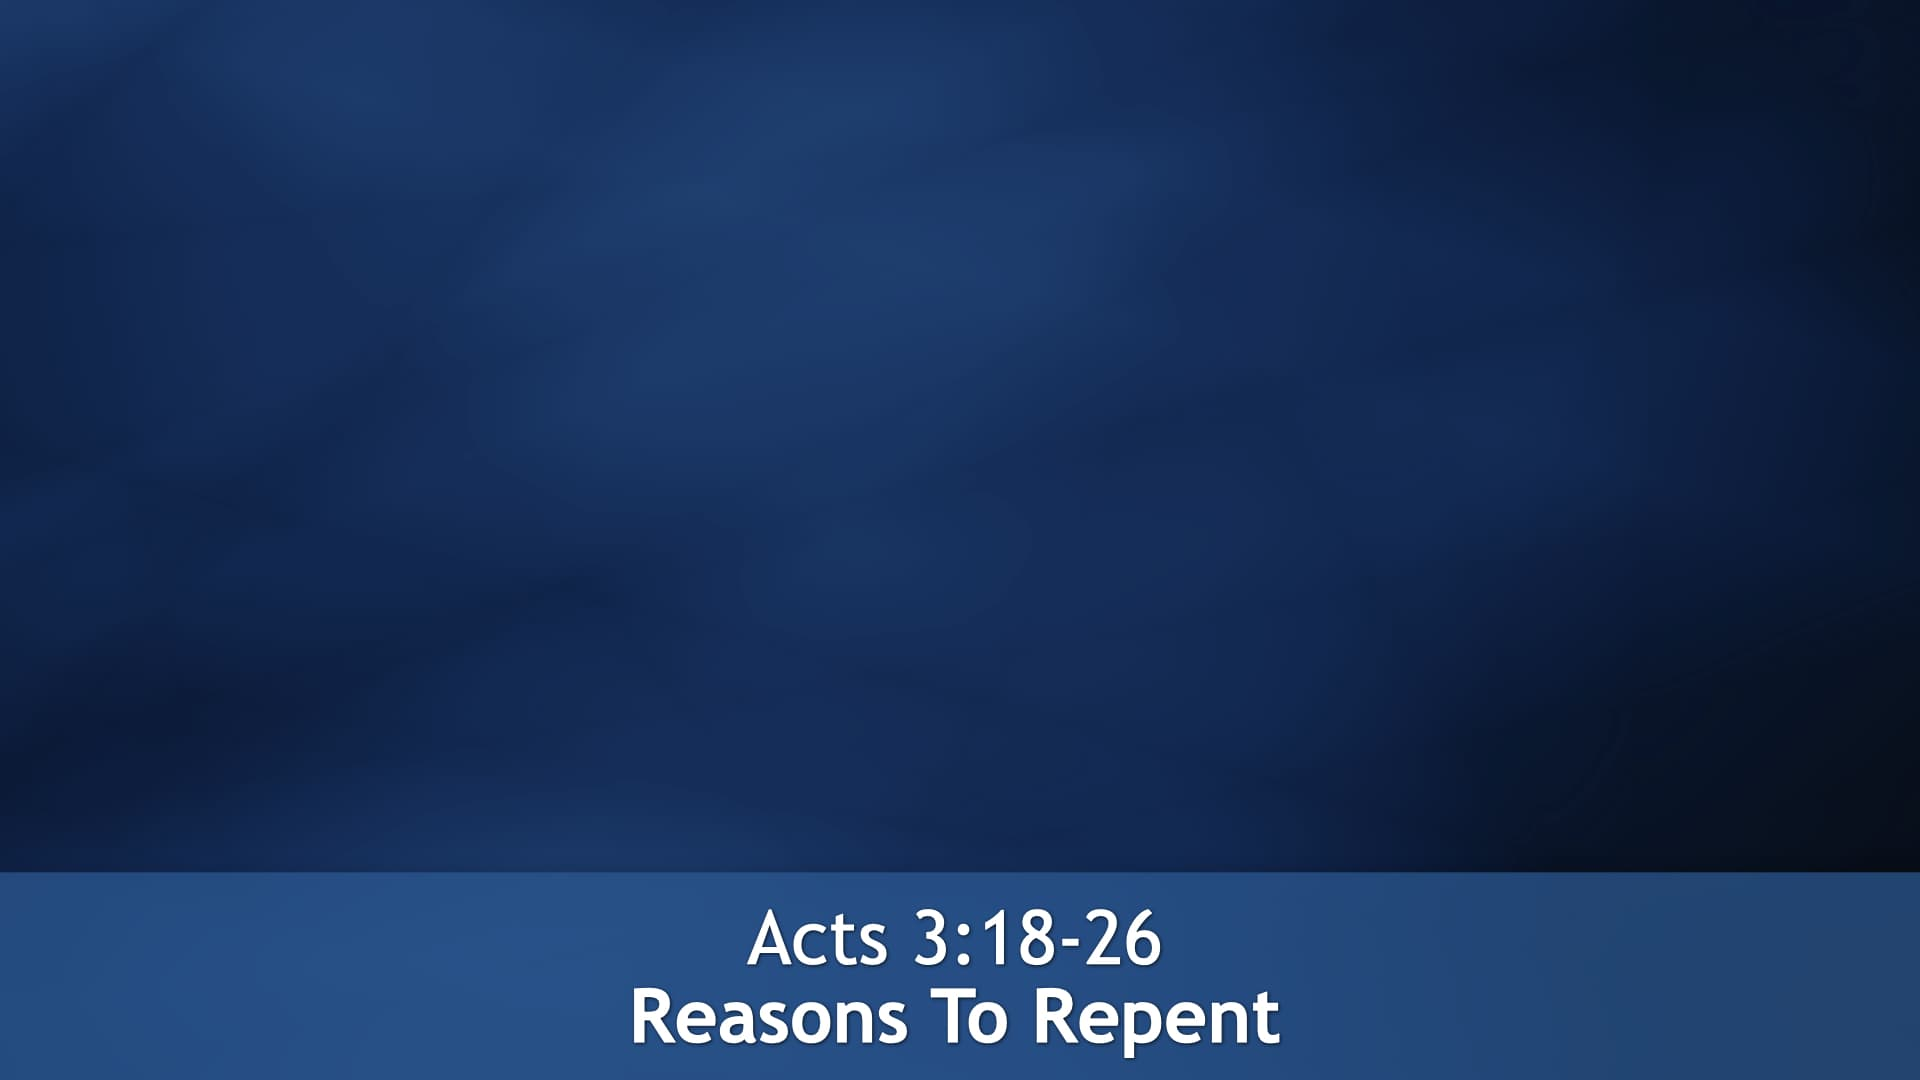 Acts 3:18-26, Reasons To Repent